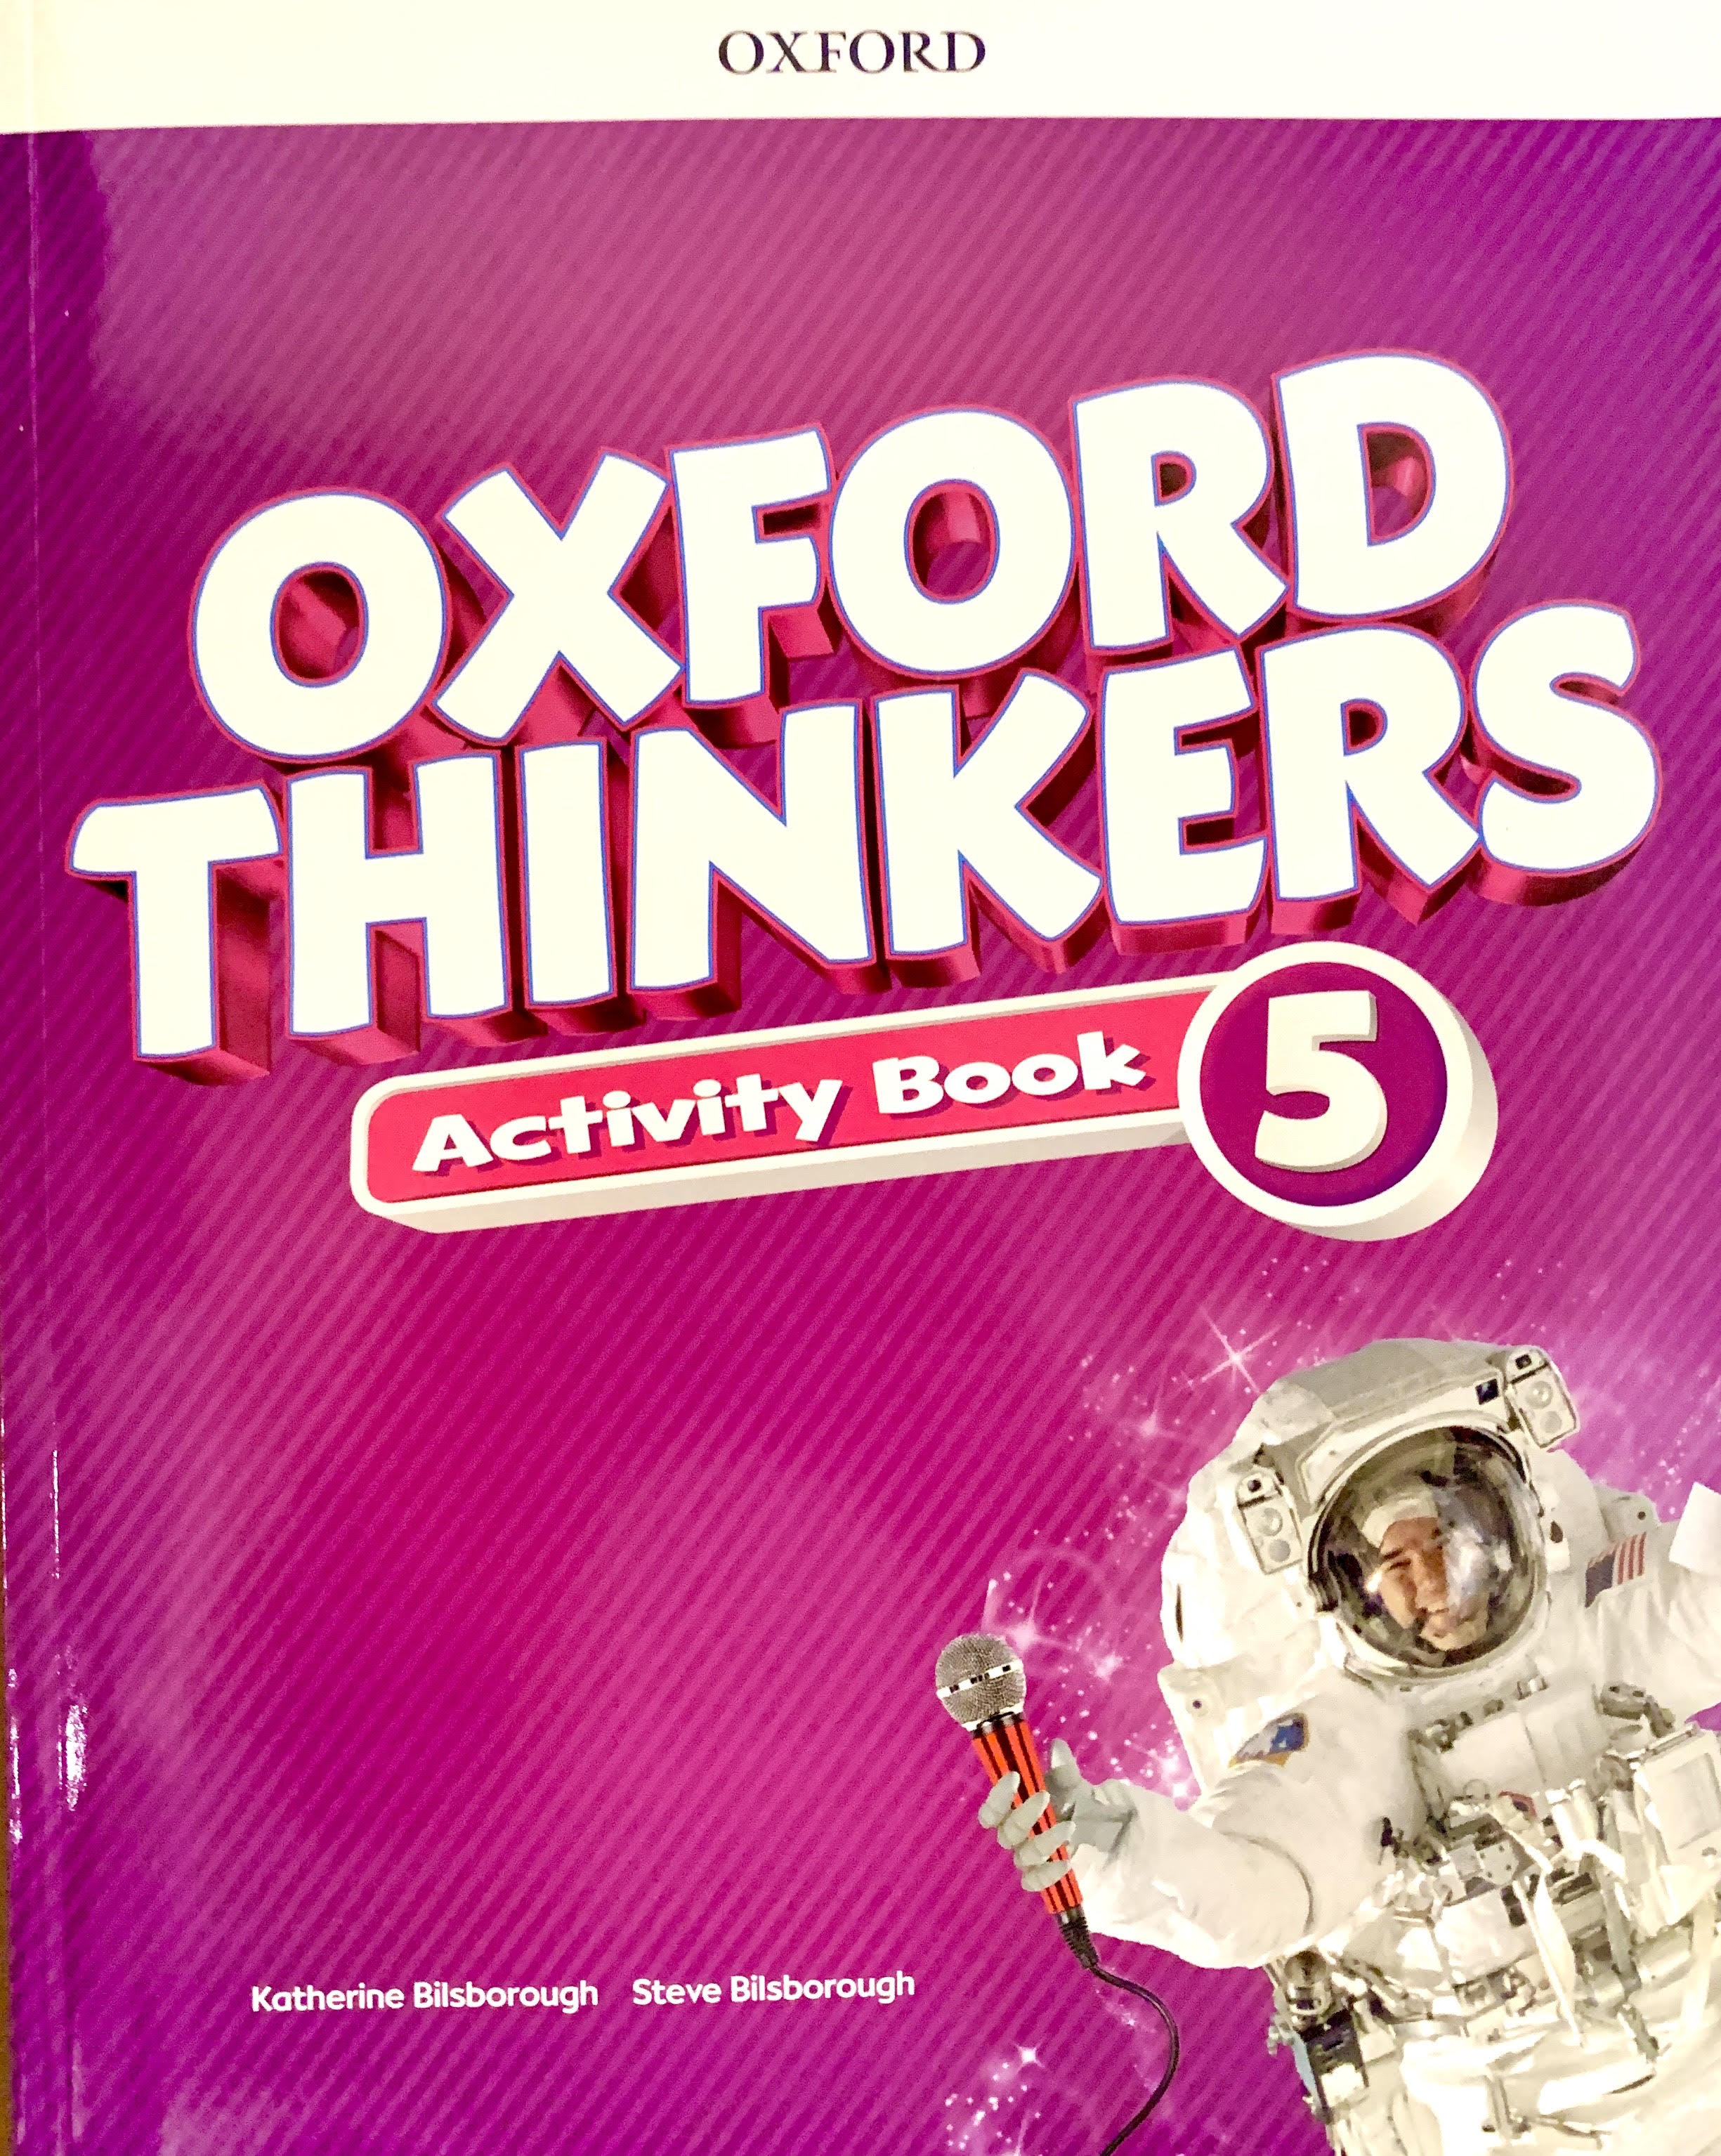 Oxford Thinkers Activity 5